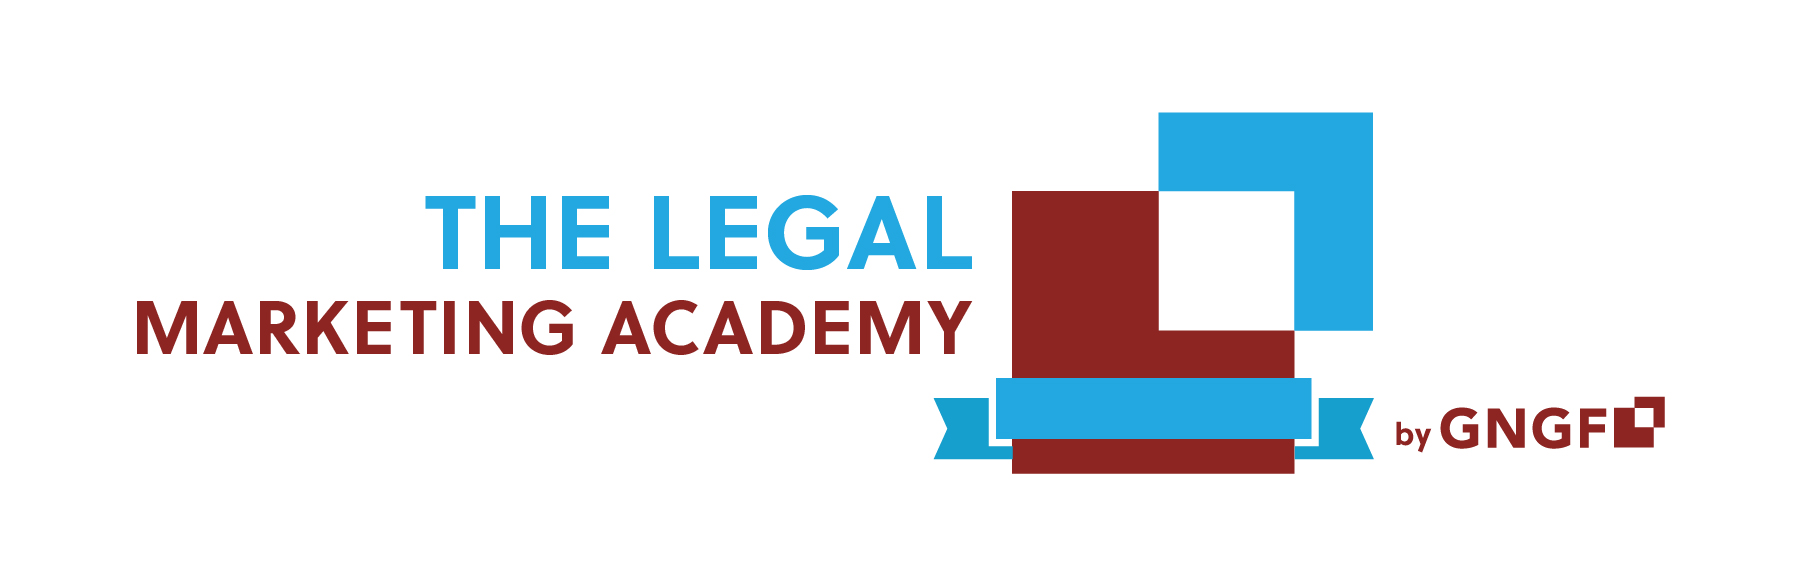 The Legal Marketing Academy by GNGF